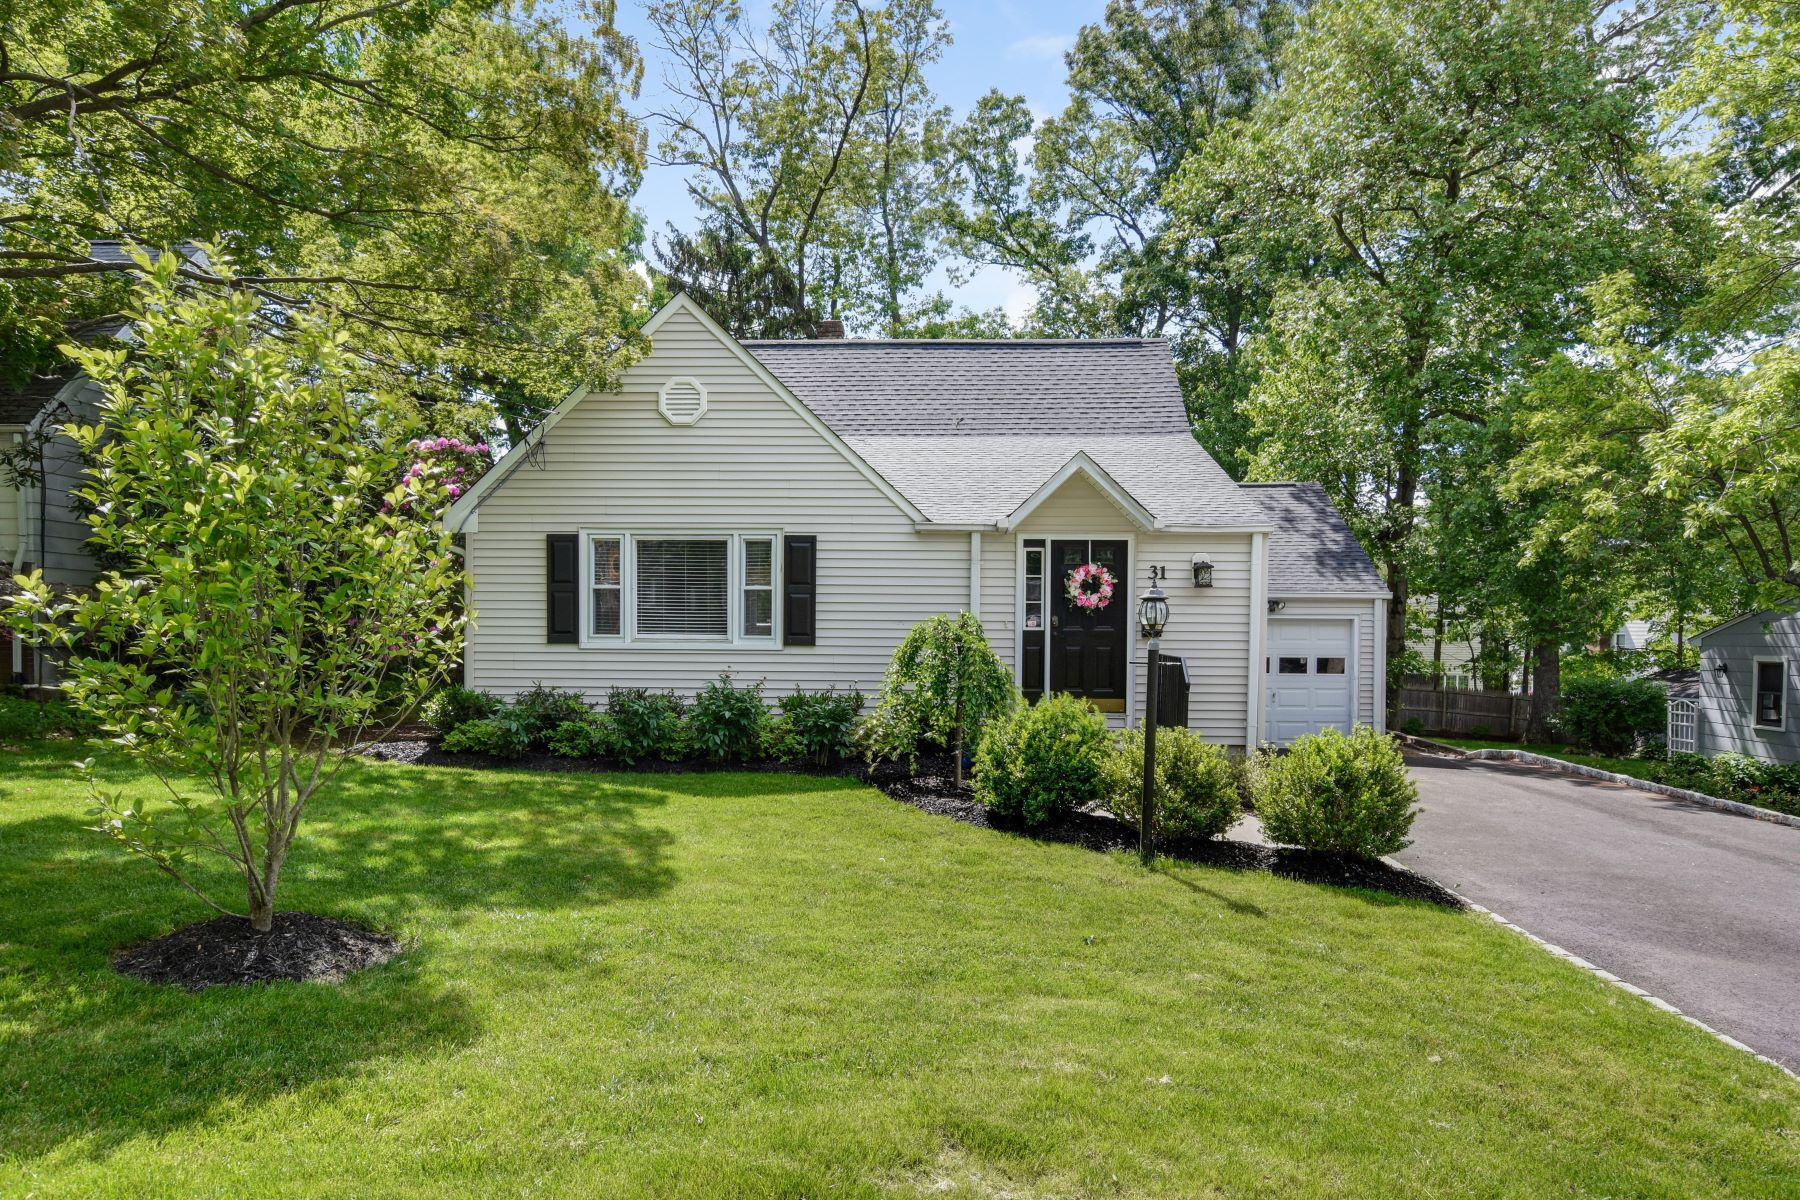 Single Family Homes for Sale at Fabulous Cape 31 Salem Road New Providence, New Jersey 07974 United States